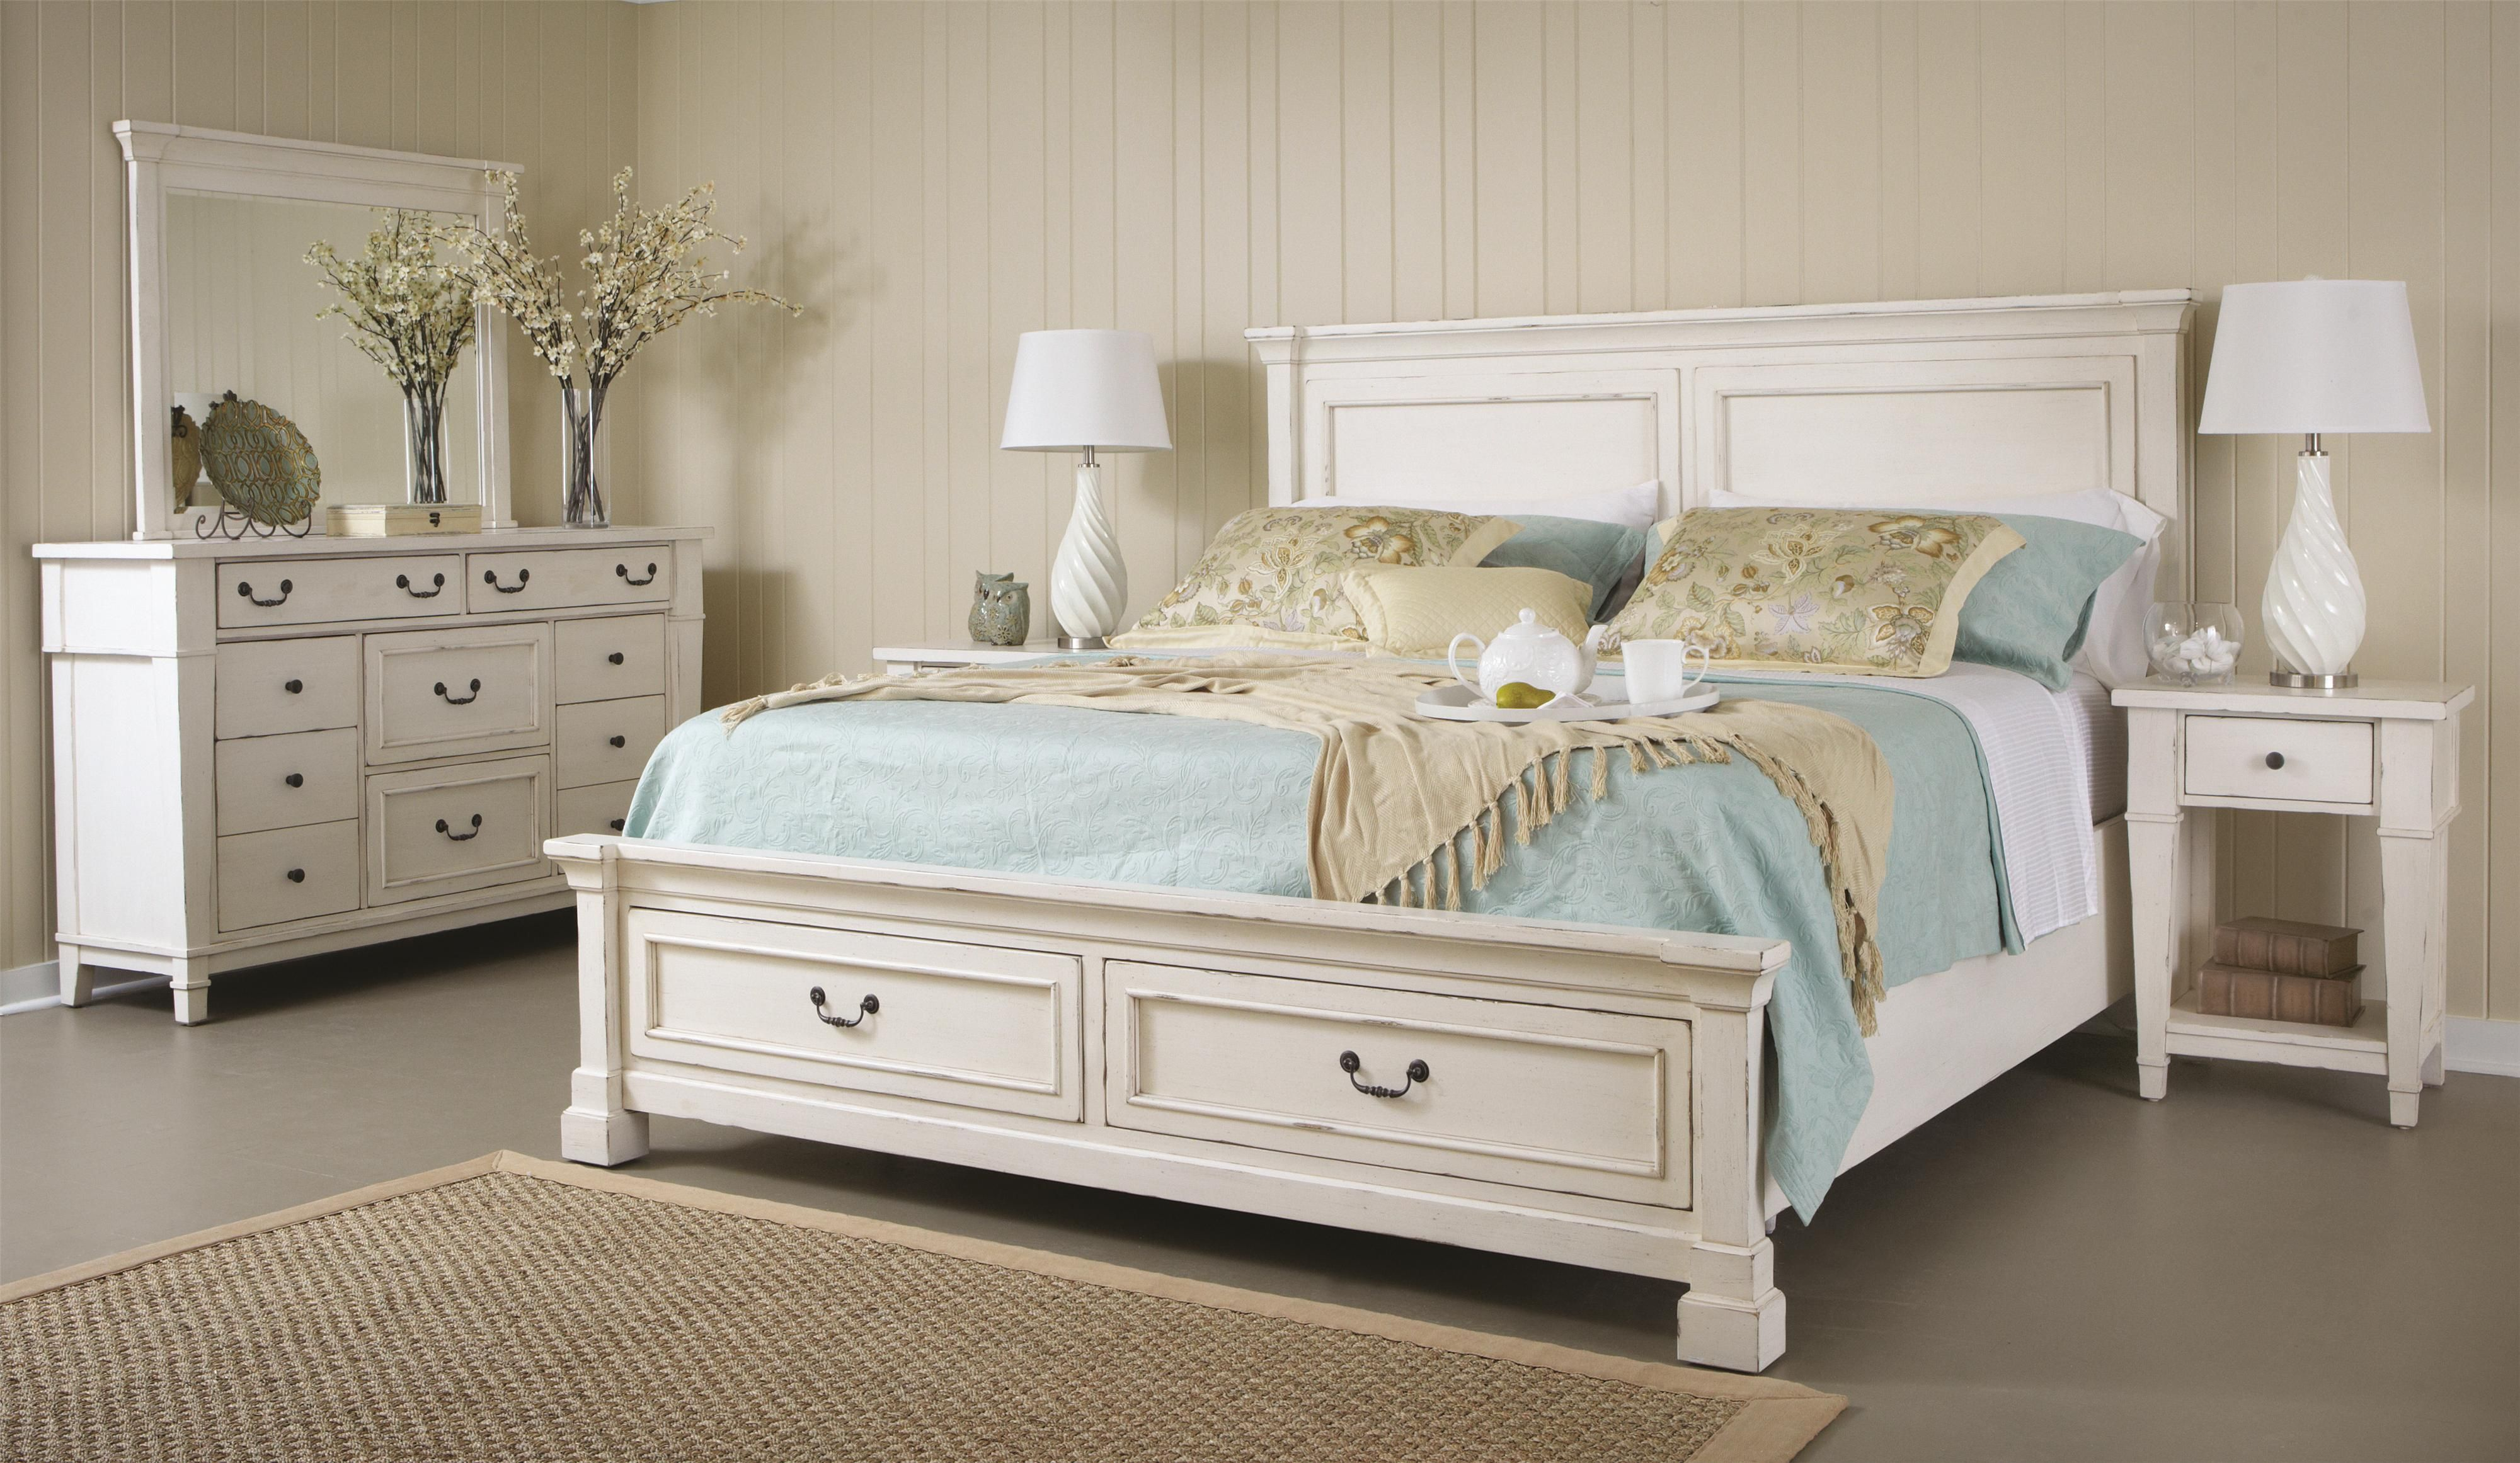 Gahs Folio 21 Stoney Creek Queen Bed At Great American Home